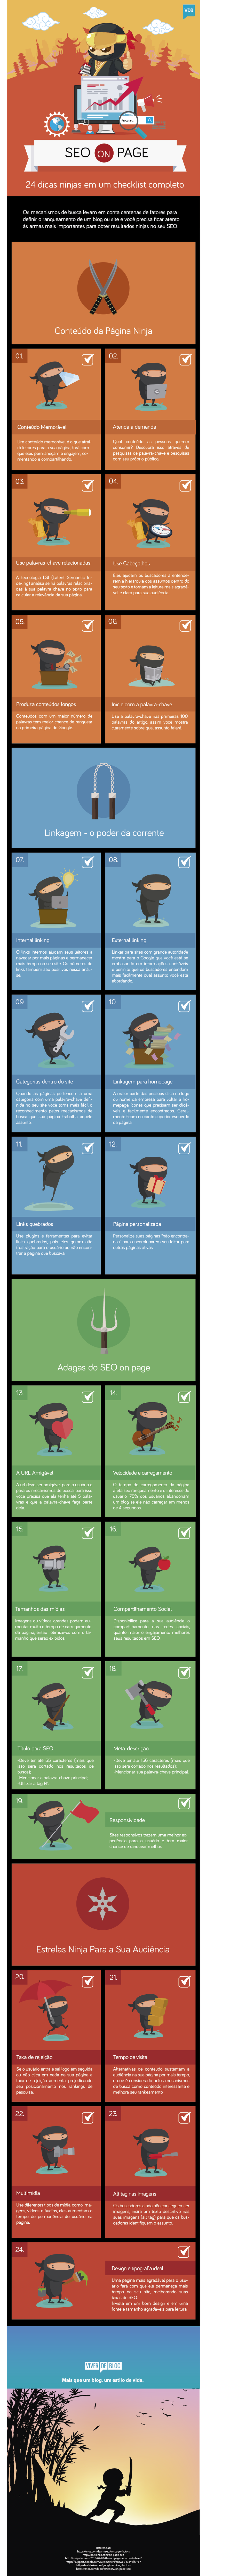 infografico-seo-on-page